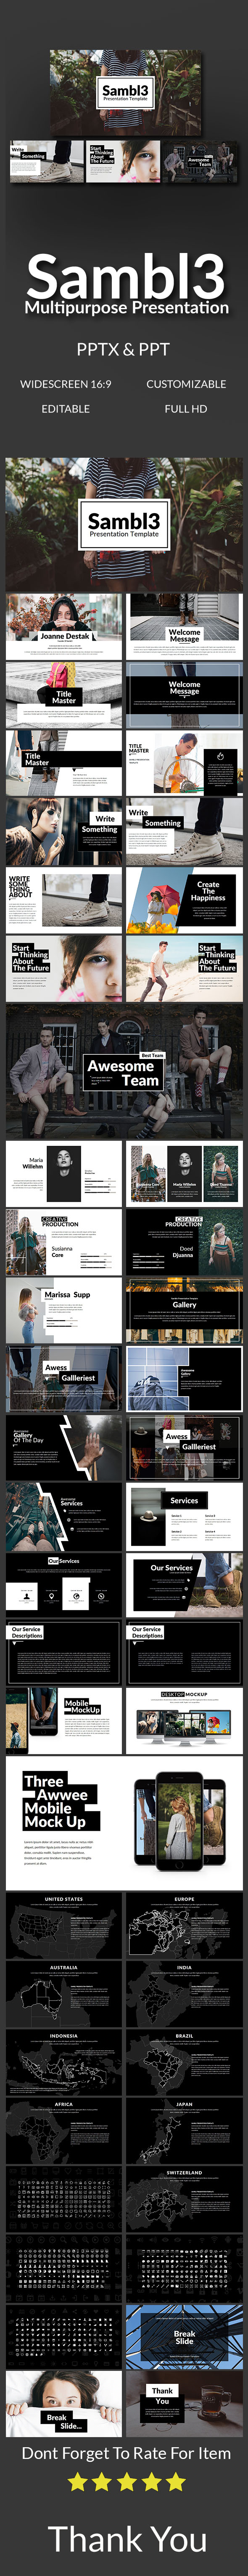 Sambl3 Multipurpose Presentation - Abstract PowerPoint Templates